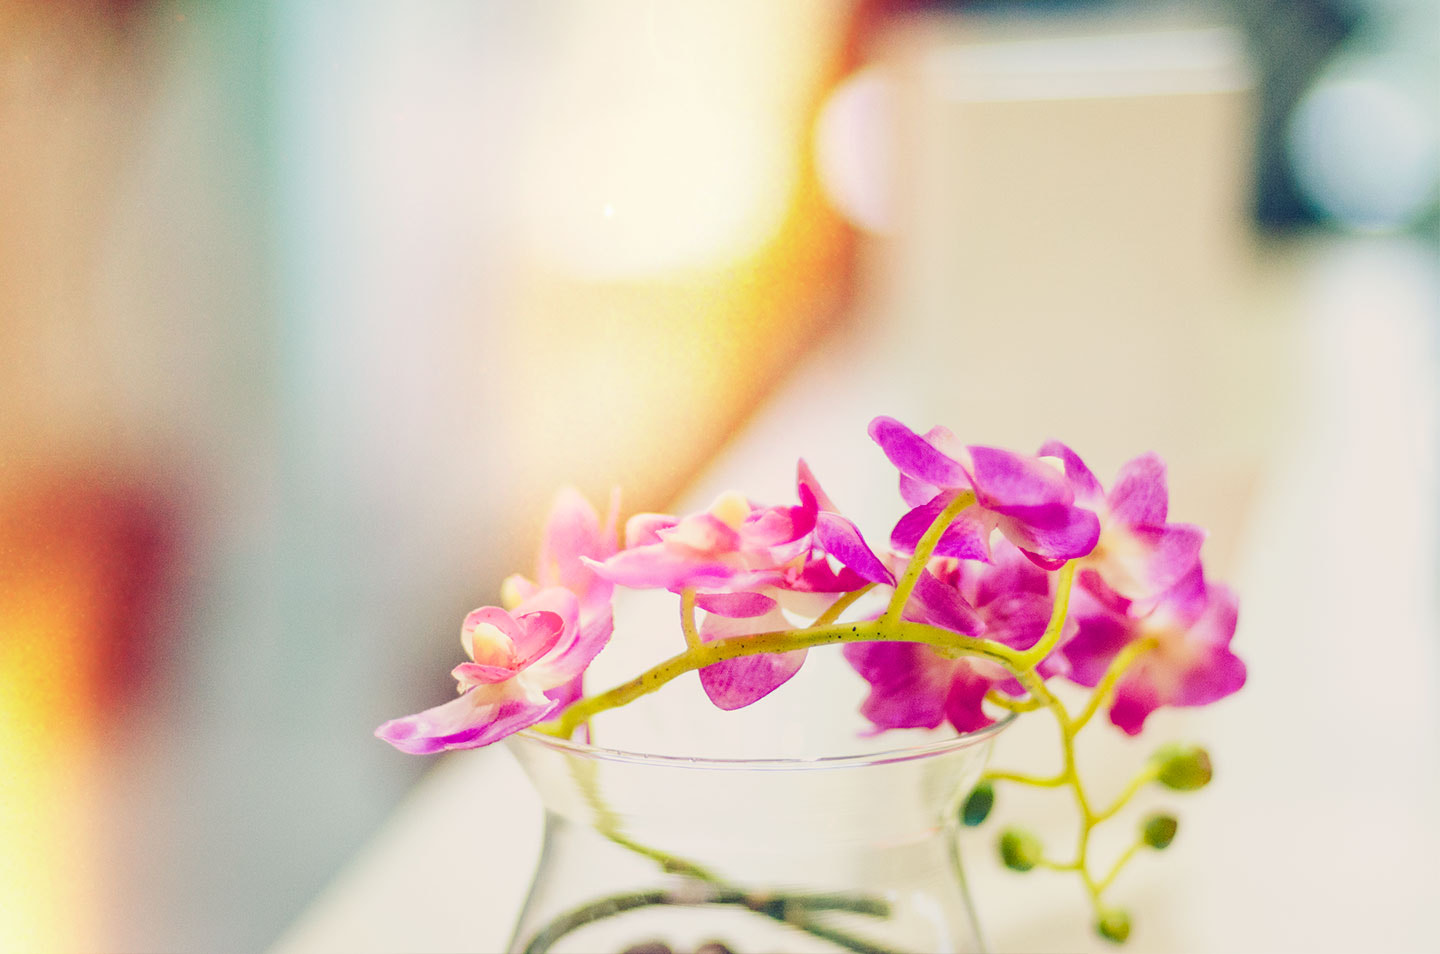 Photograph orchid by Bady qb on 500px